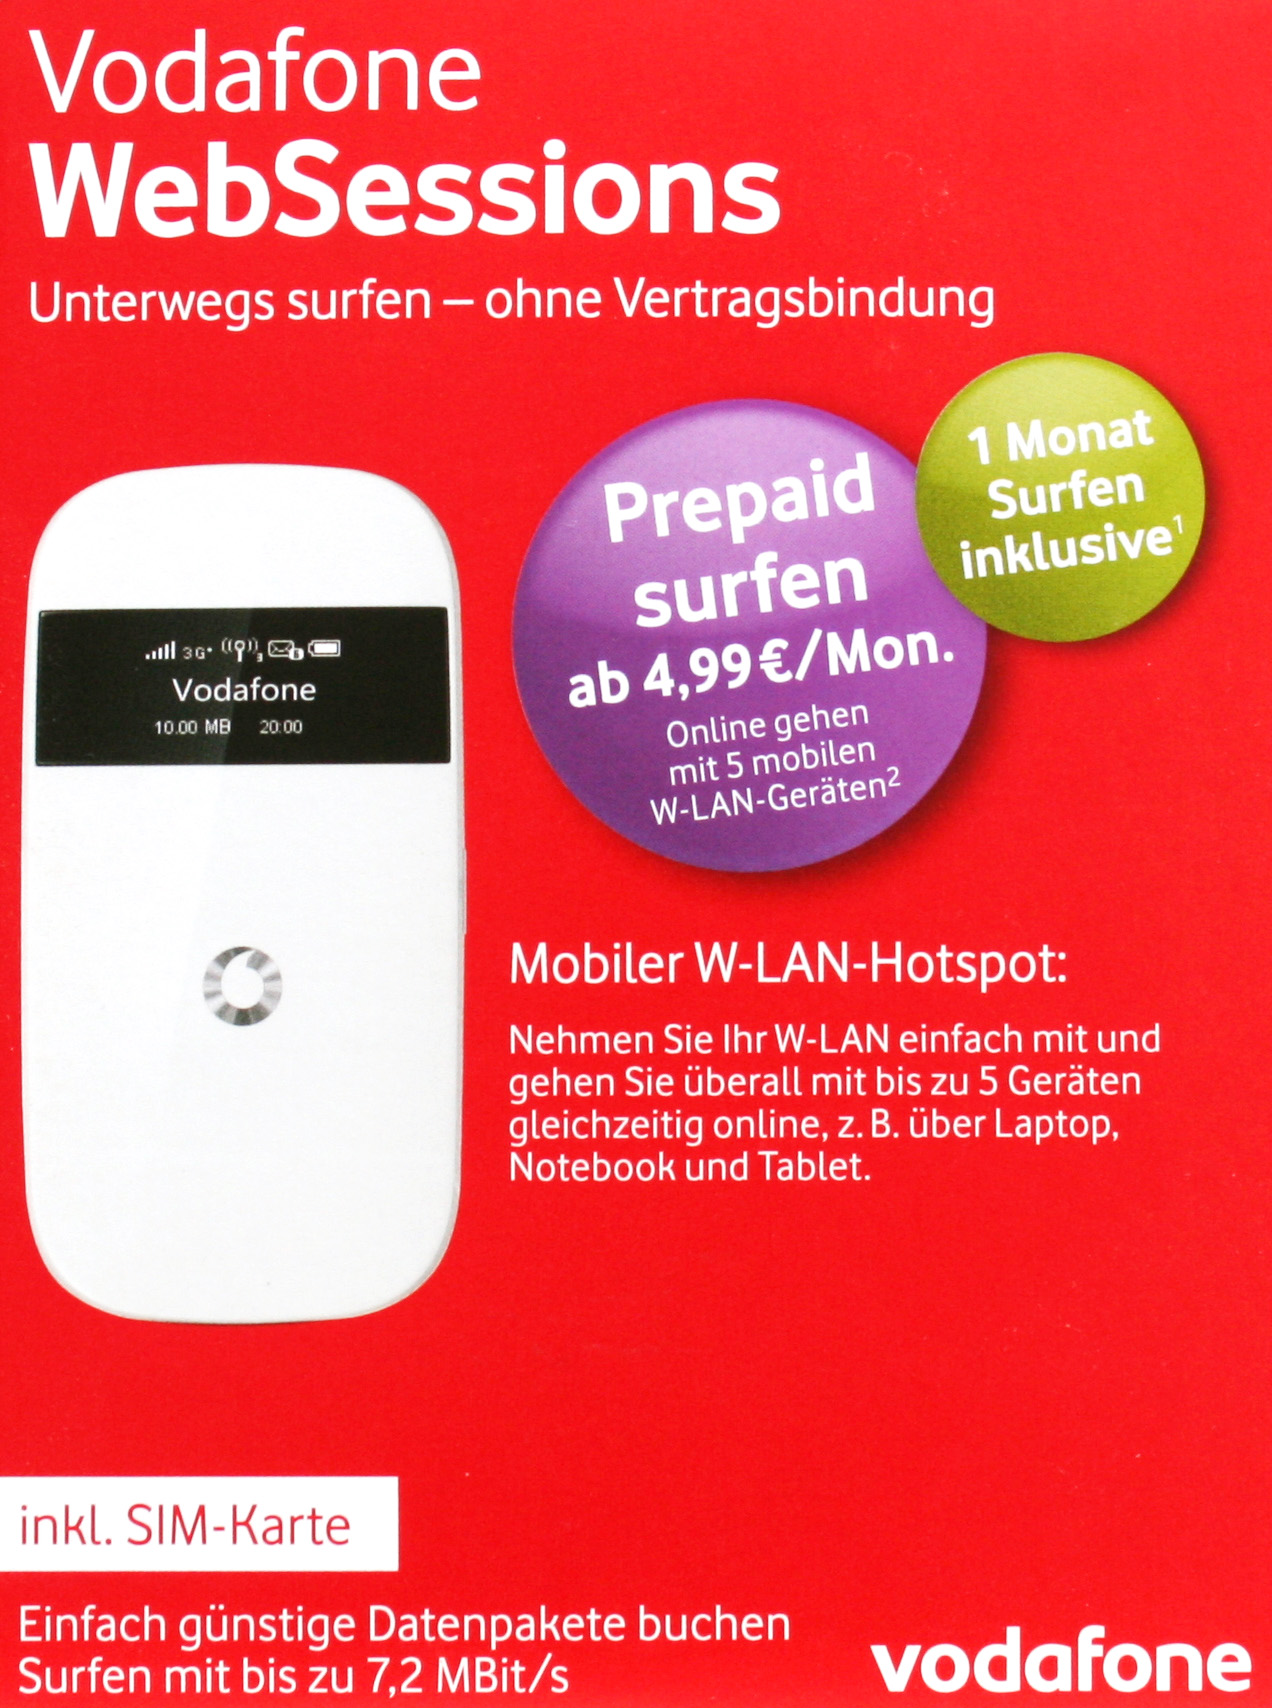 vodafone r203 mobiler wlan hotspot mit sim karte zum. Black Bedroom Furniture Sets. Home Design Ideas